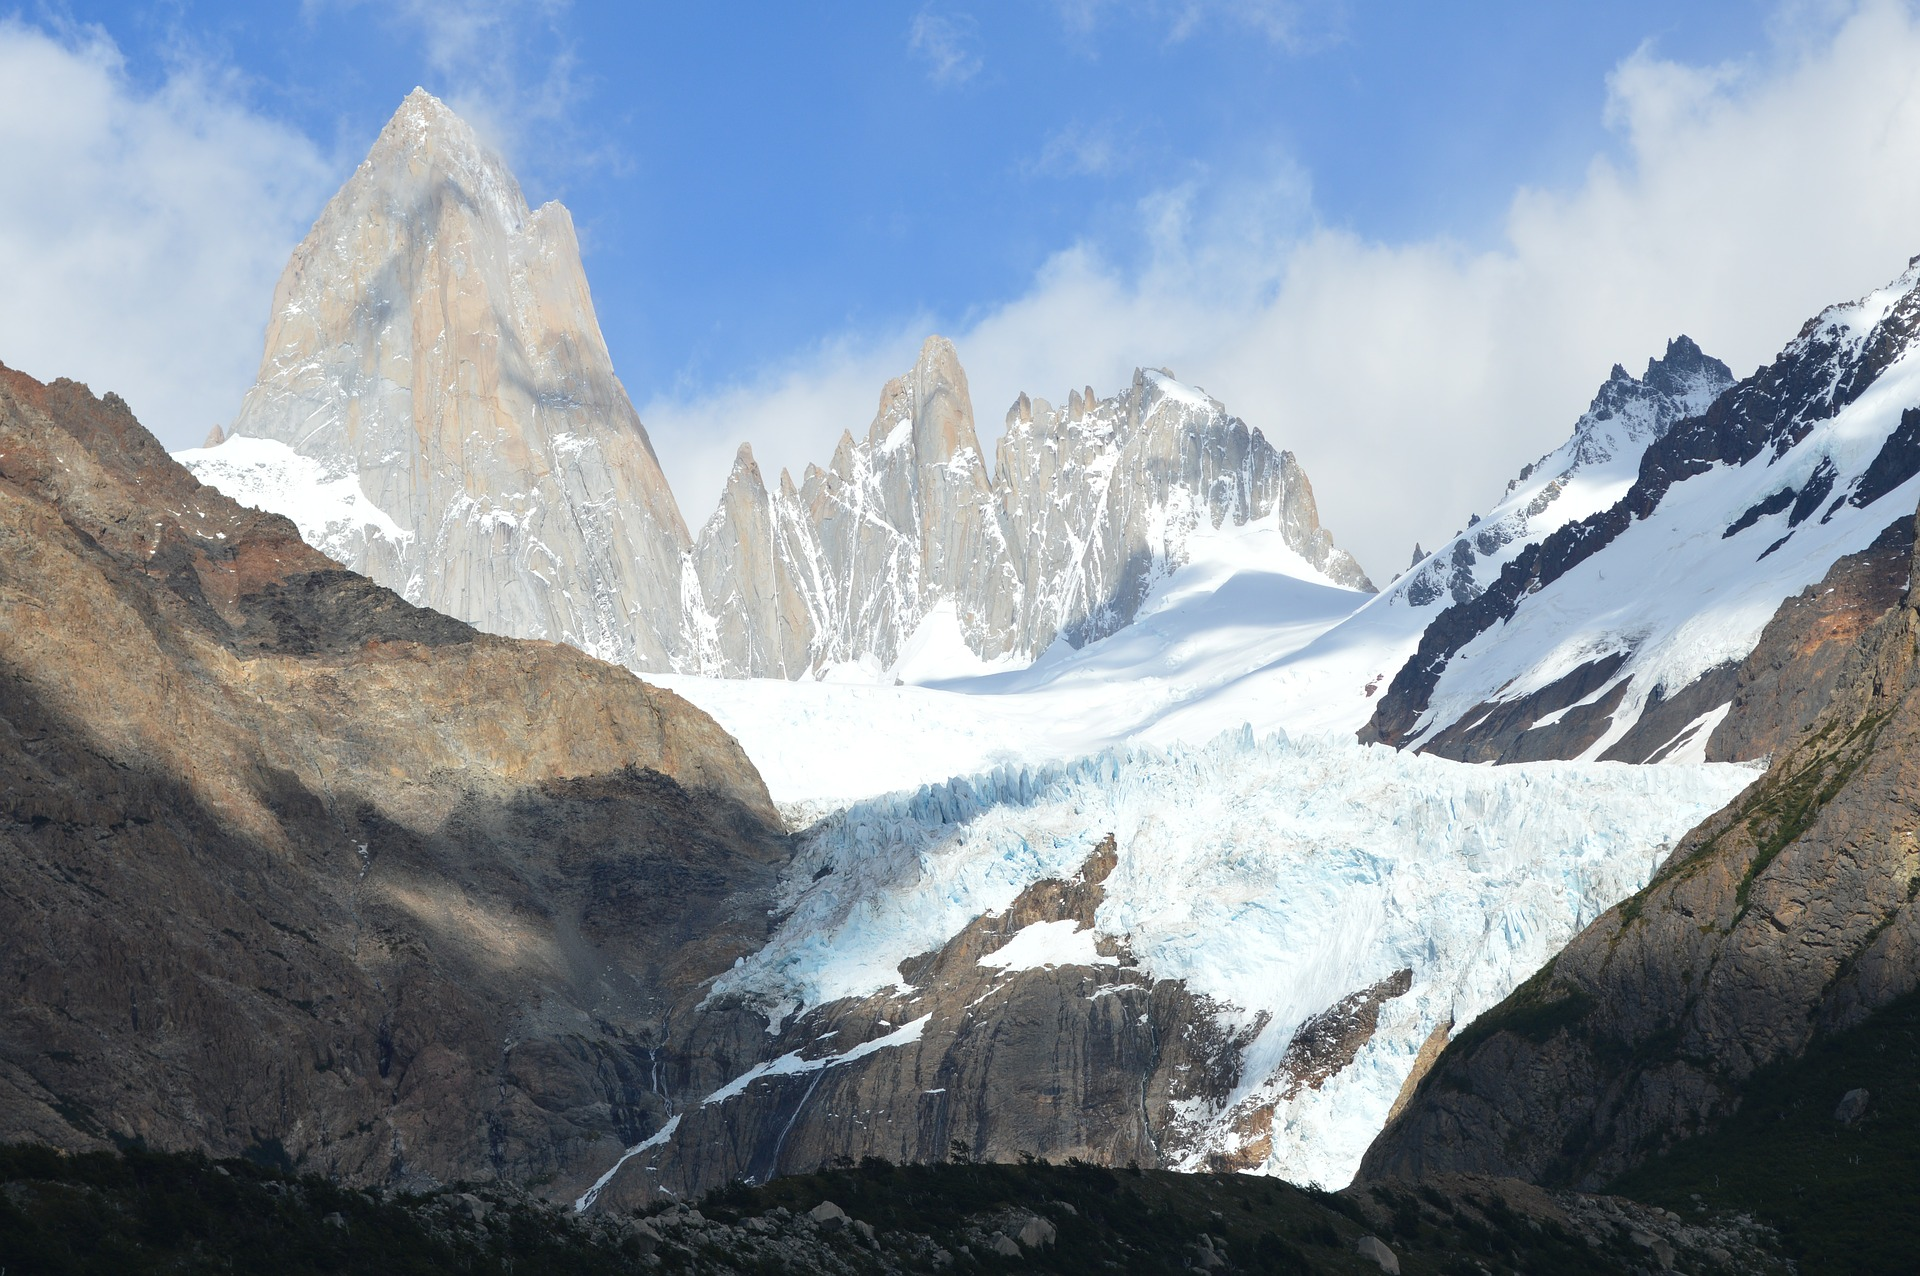 Breaktaking view on Cerro Torre mountain in Southern Patagonian, Argentina